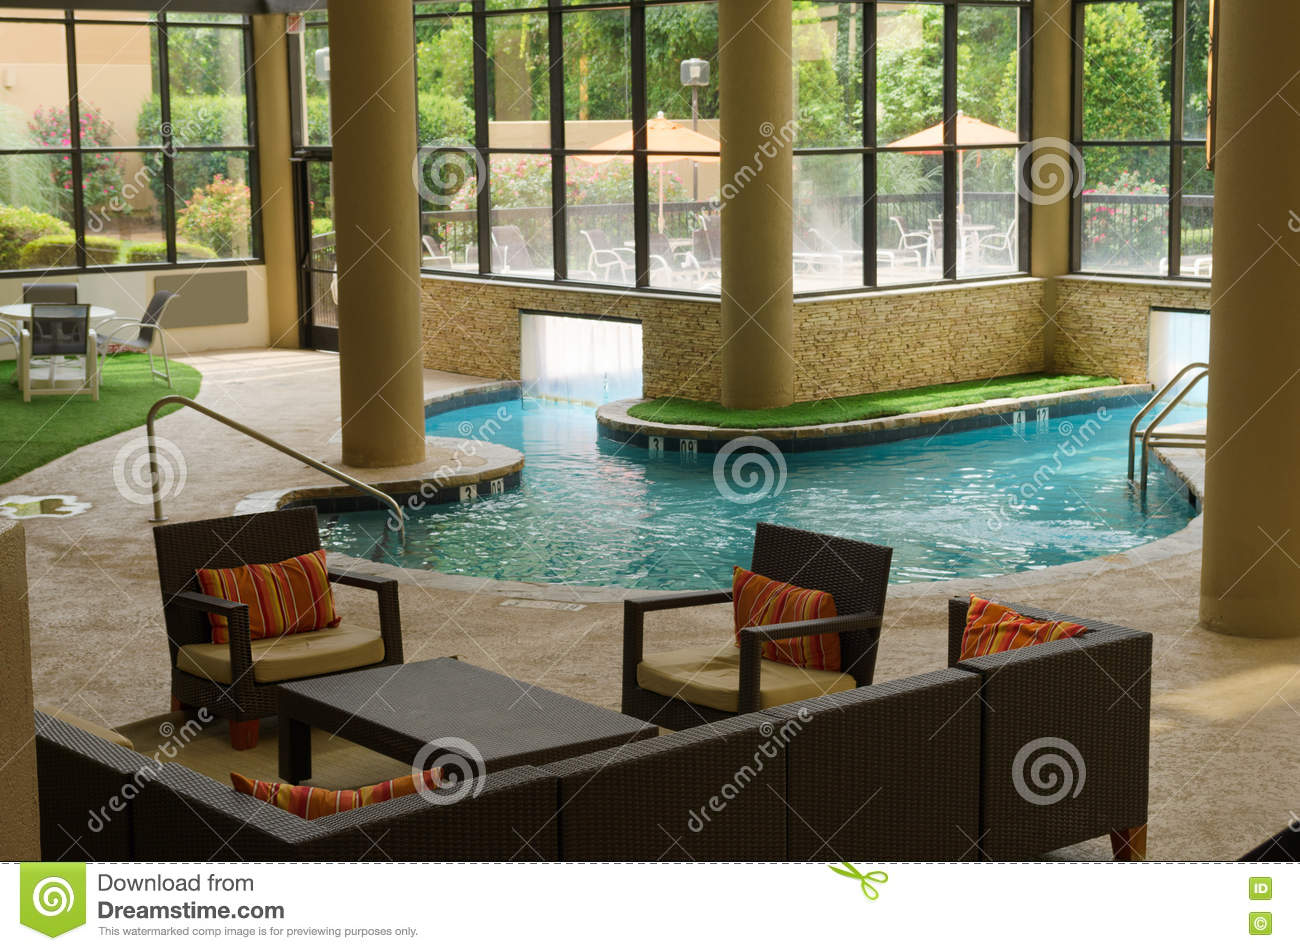 Luxury Indoor Outdoor Swimming Pool In Natural Light Stock